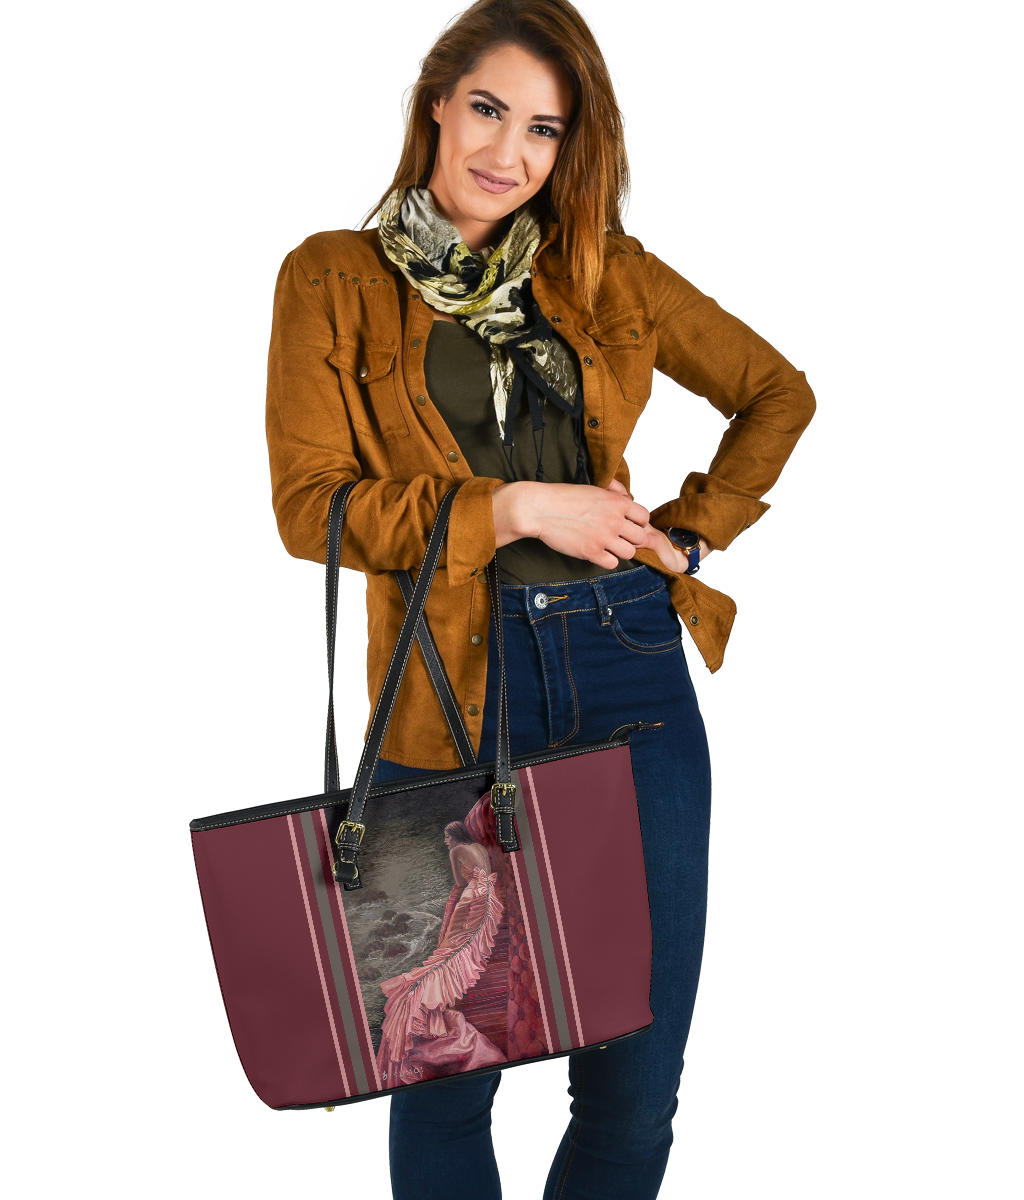 """Shrimp Taffeta"" Large PU Leather Tote (Includes Expedited Shipping) ⭐⭐⭐⭐⭐ - S I S U M O I"